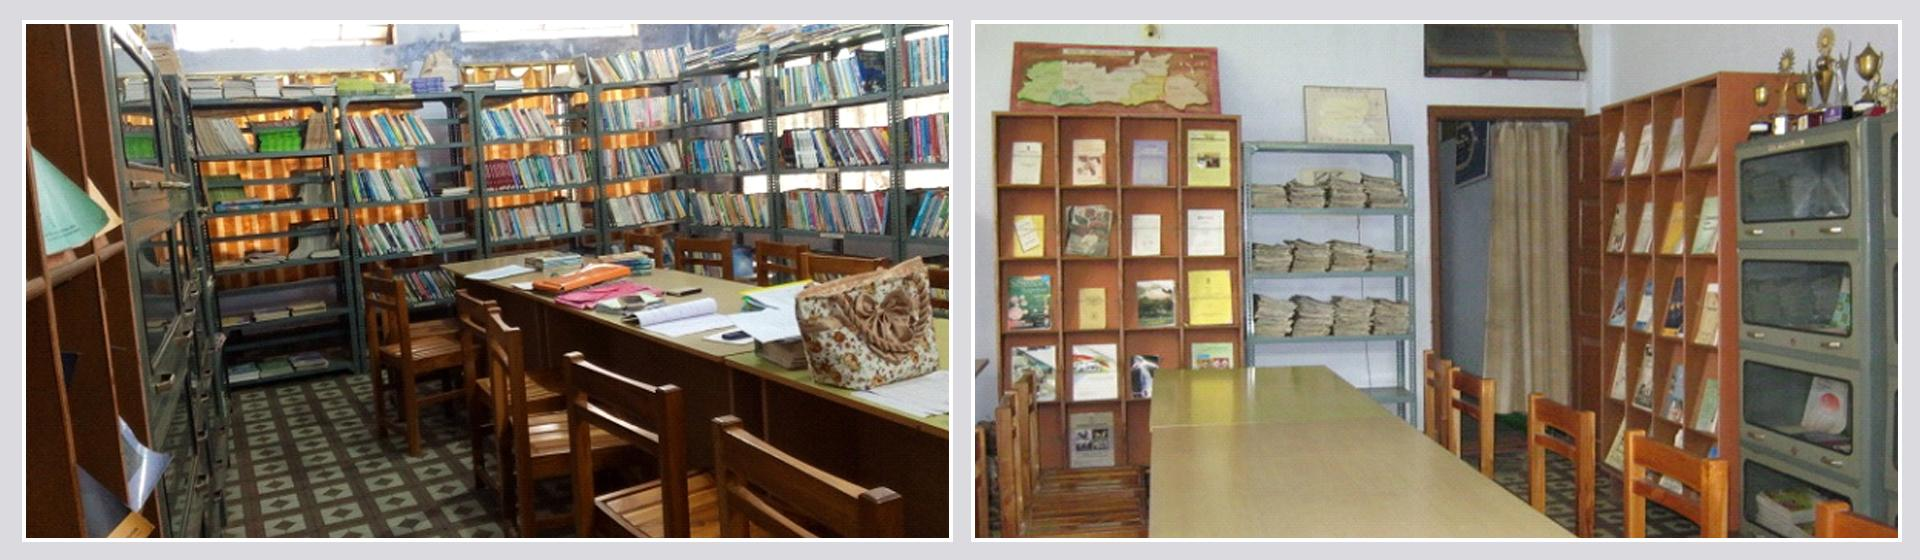 Library and Book Shelf Banner Image